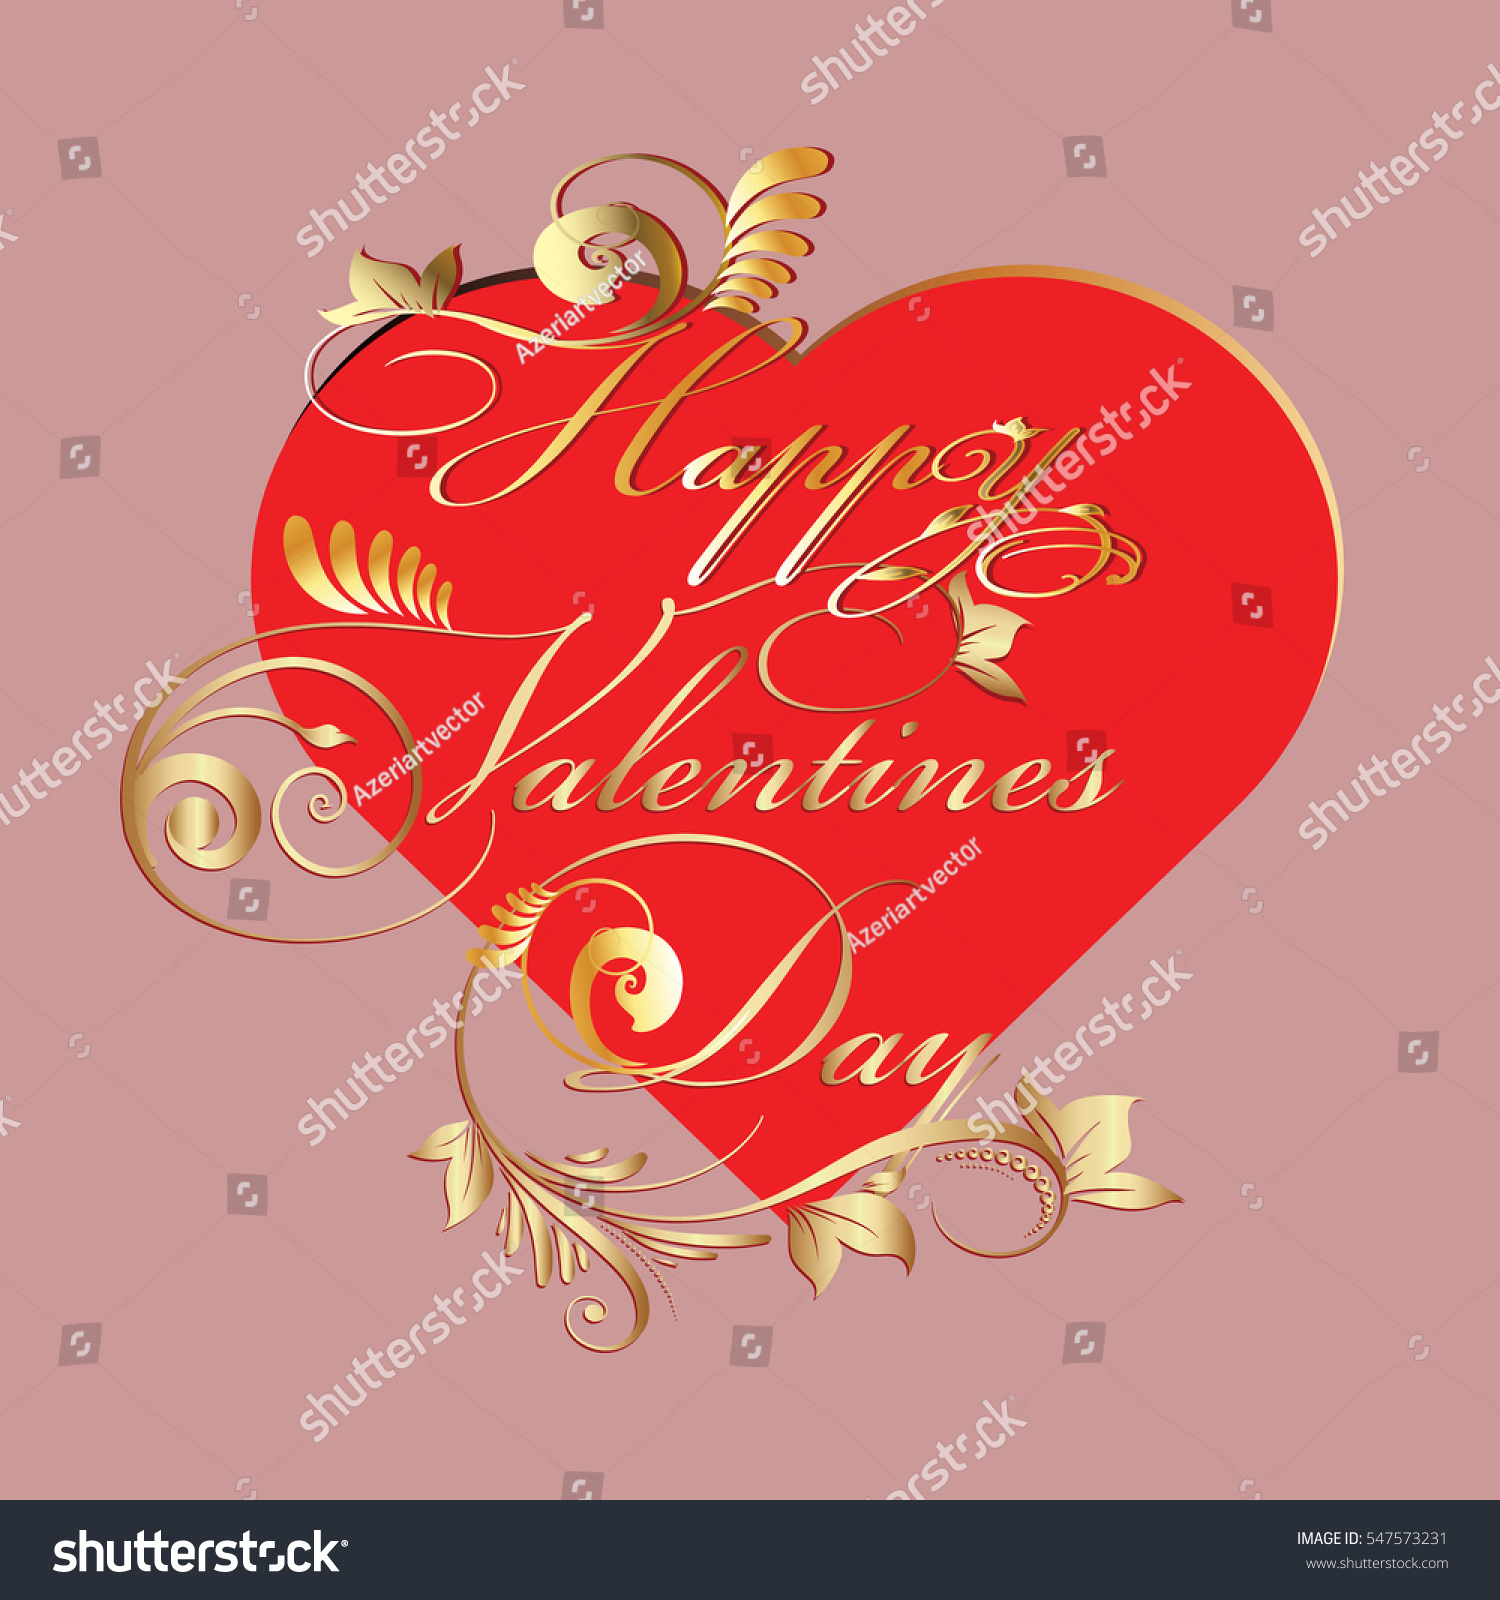 Happy Valentines Day Greetings Vintage Card Stock Vector 547573231